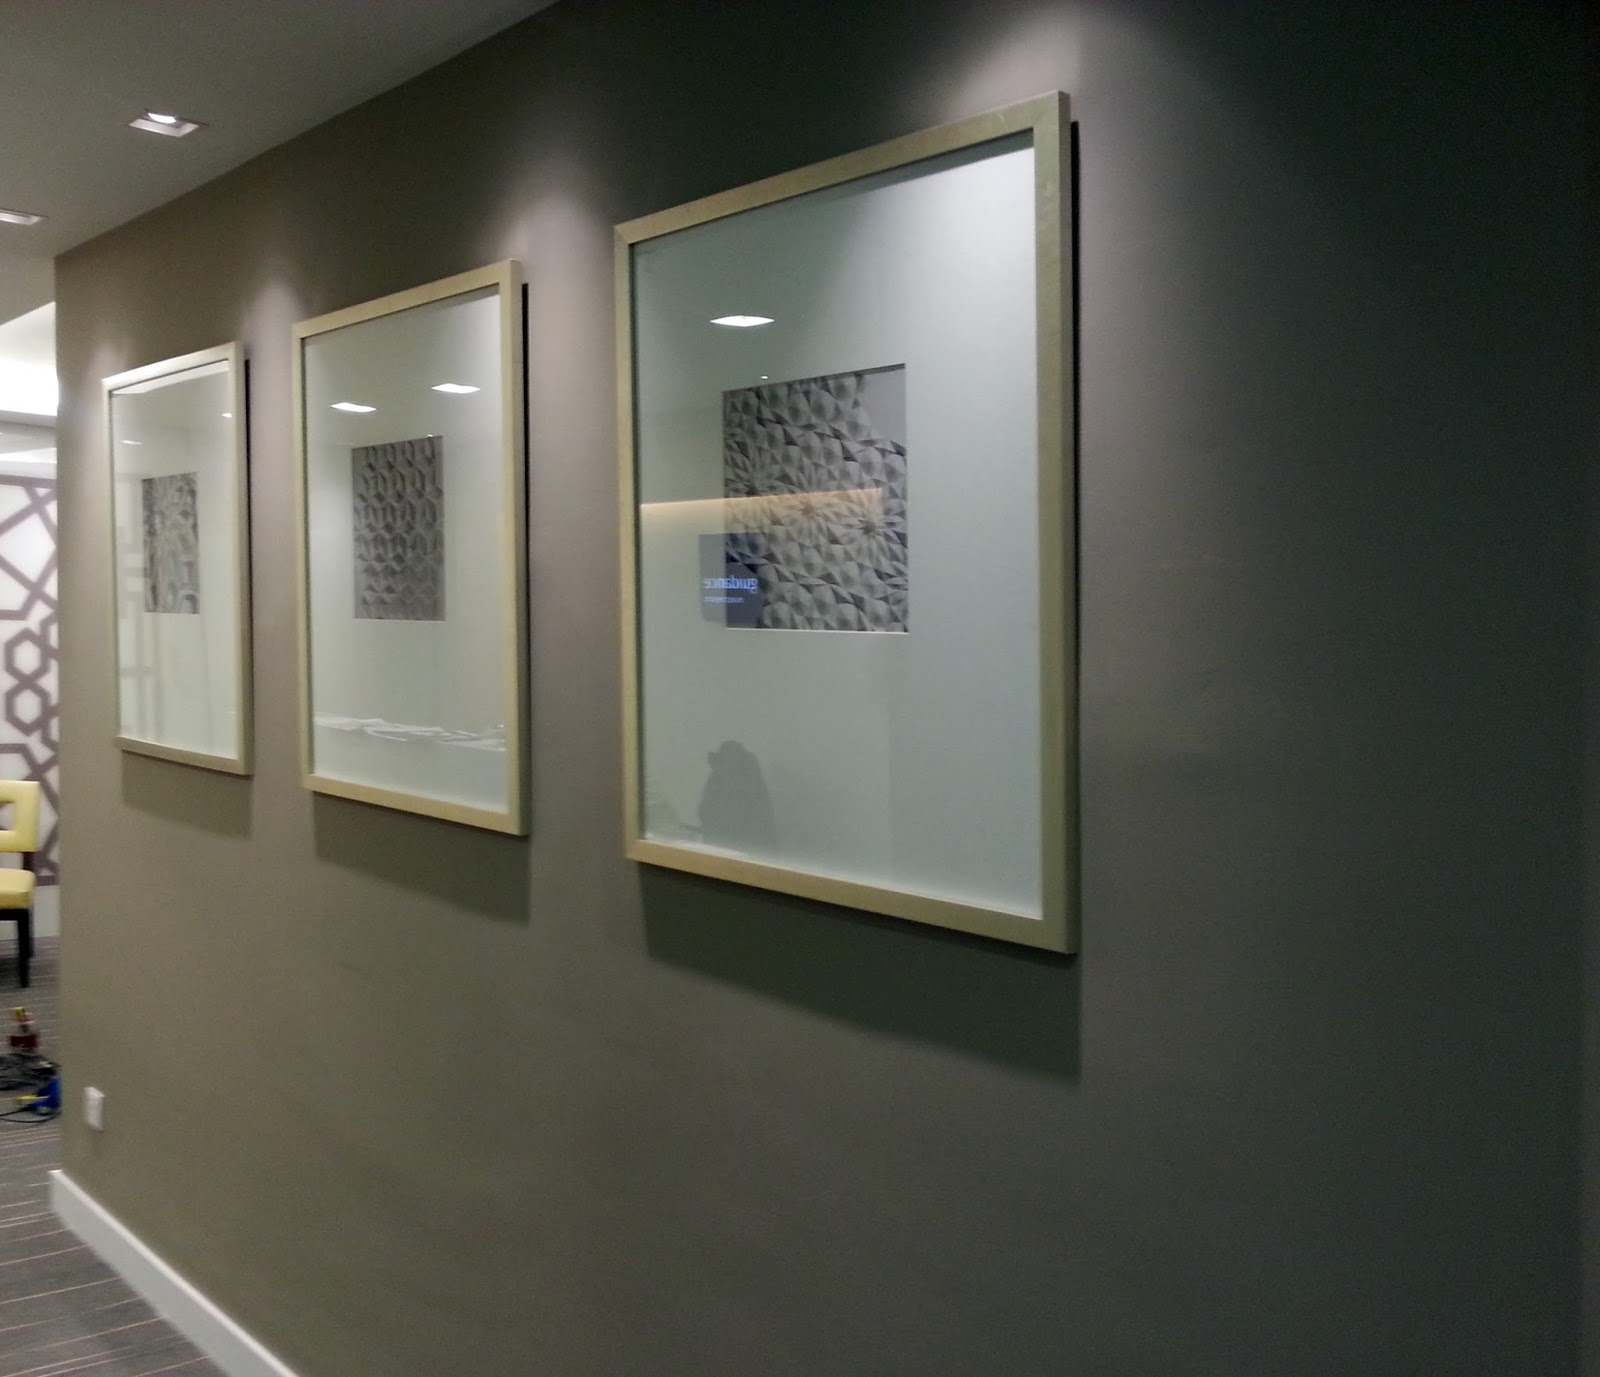 Frame shop in Kuala Lumpur - Talens Frames Gallery: Art Gallery and ...